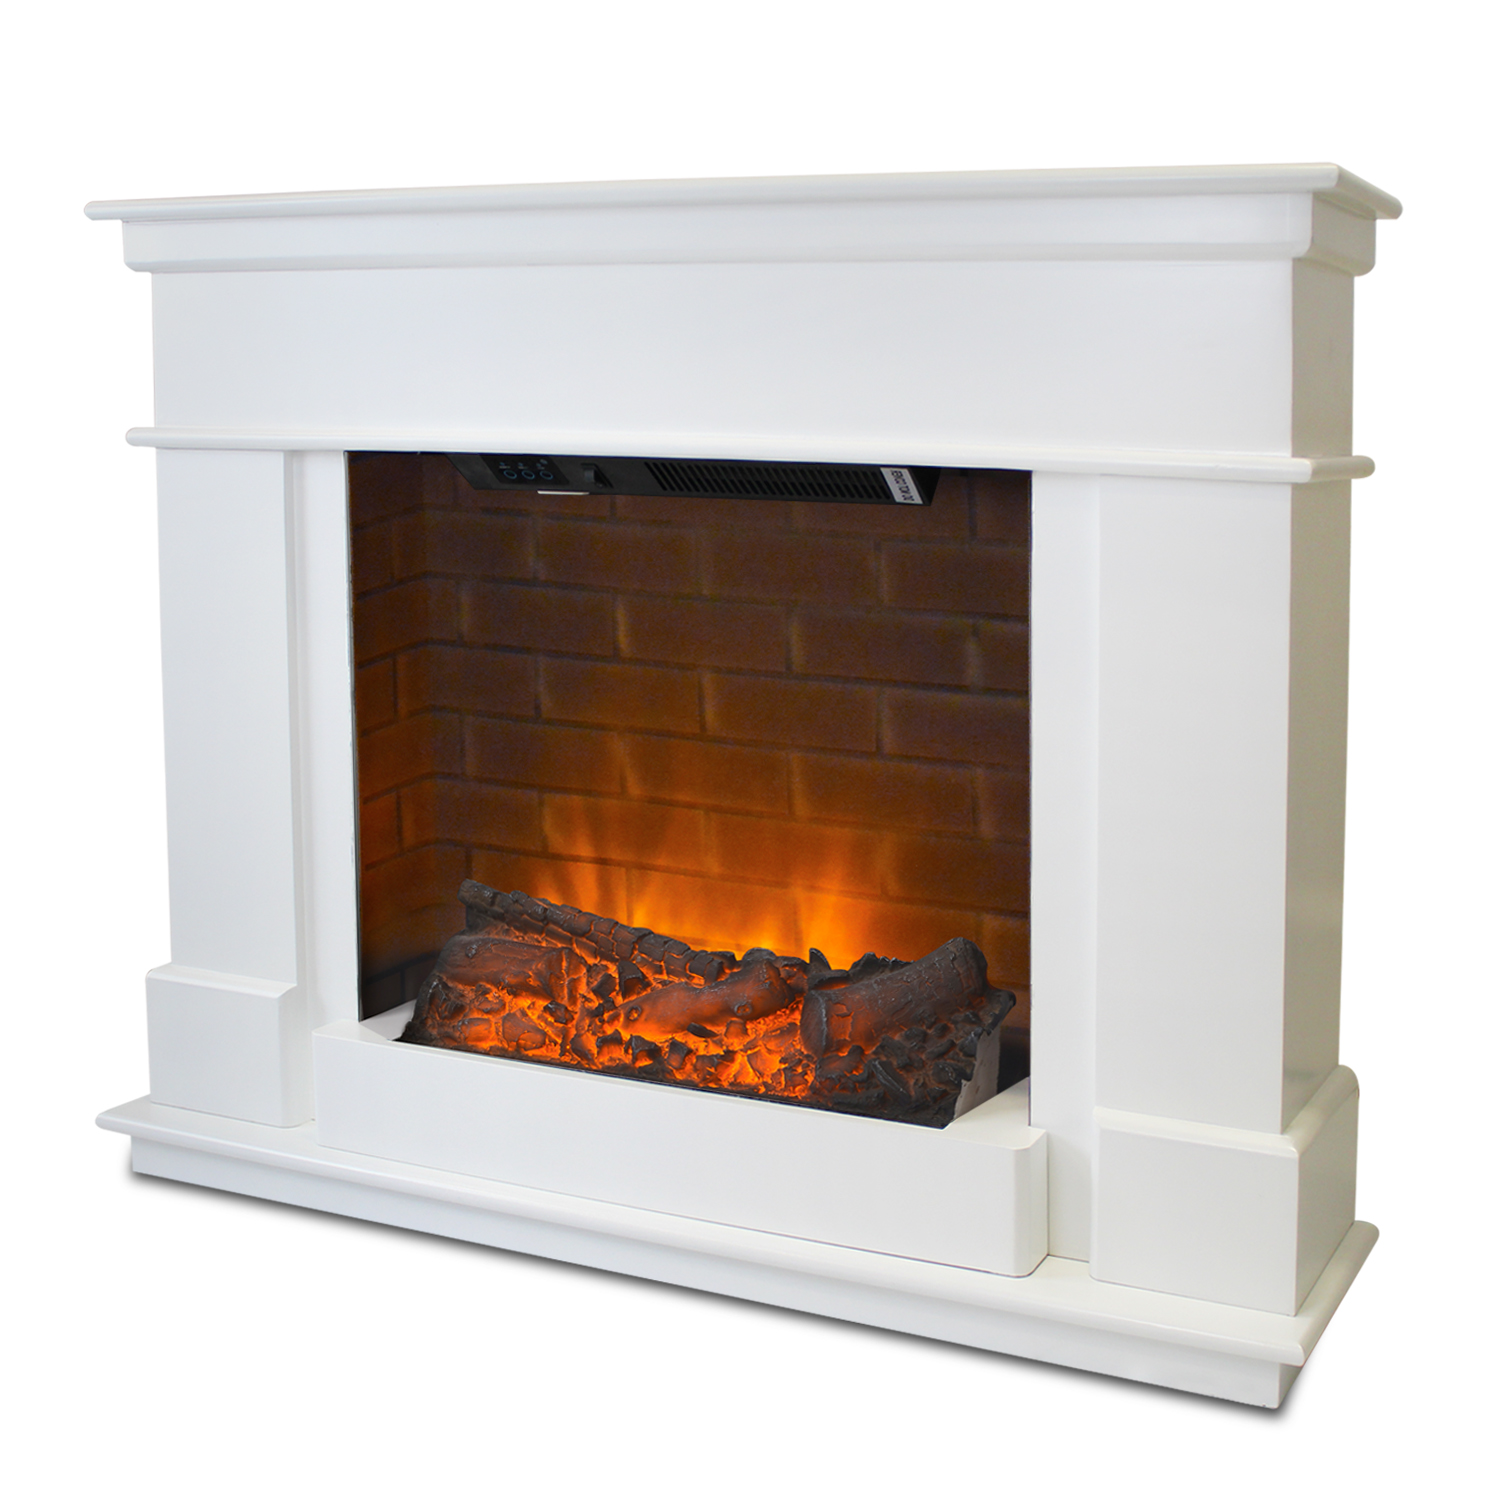 Contemporary Free Standing Electric Fires: Free Standing Electric Fire Wall Mounted Modern Surround